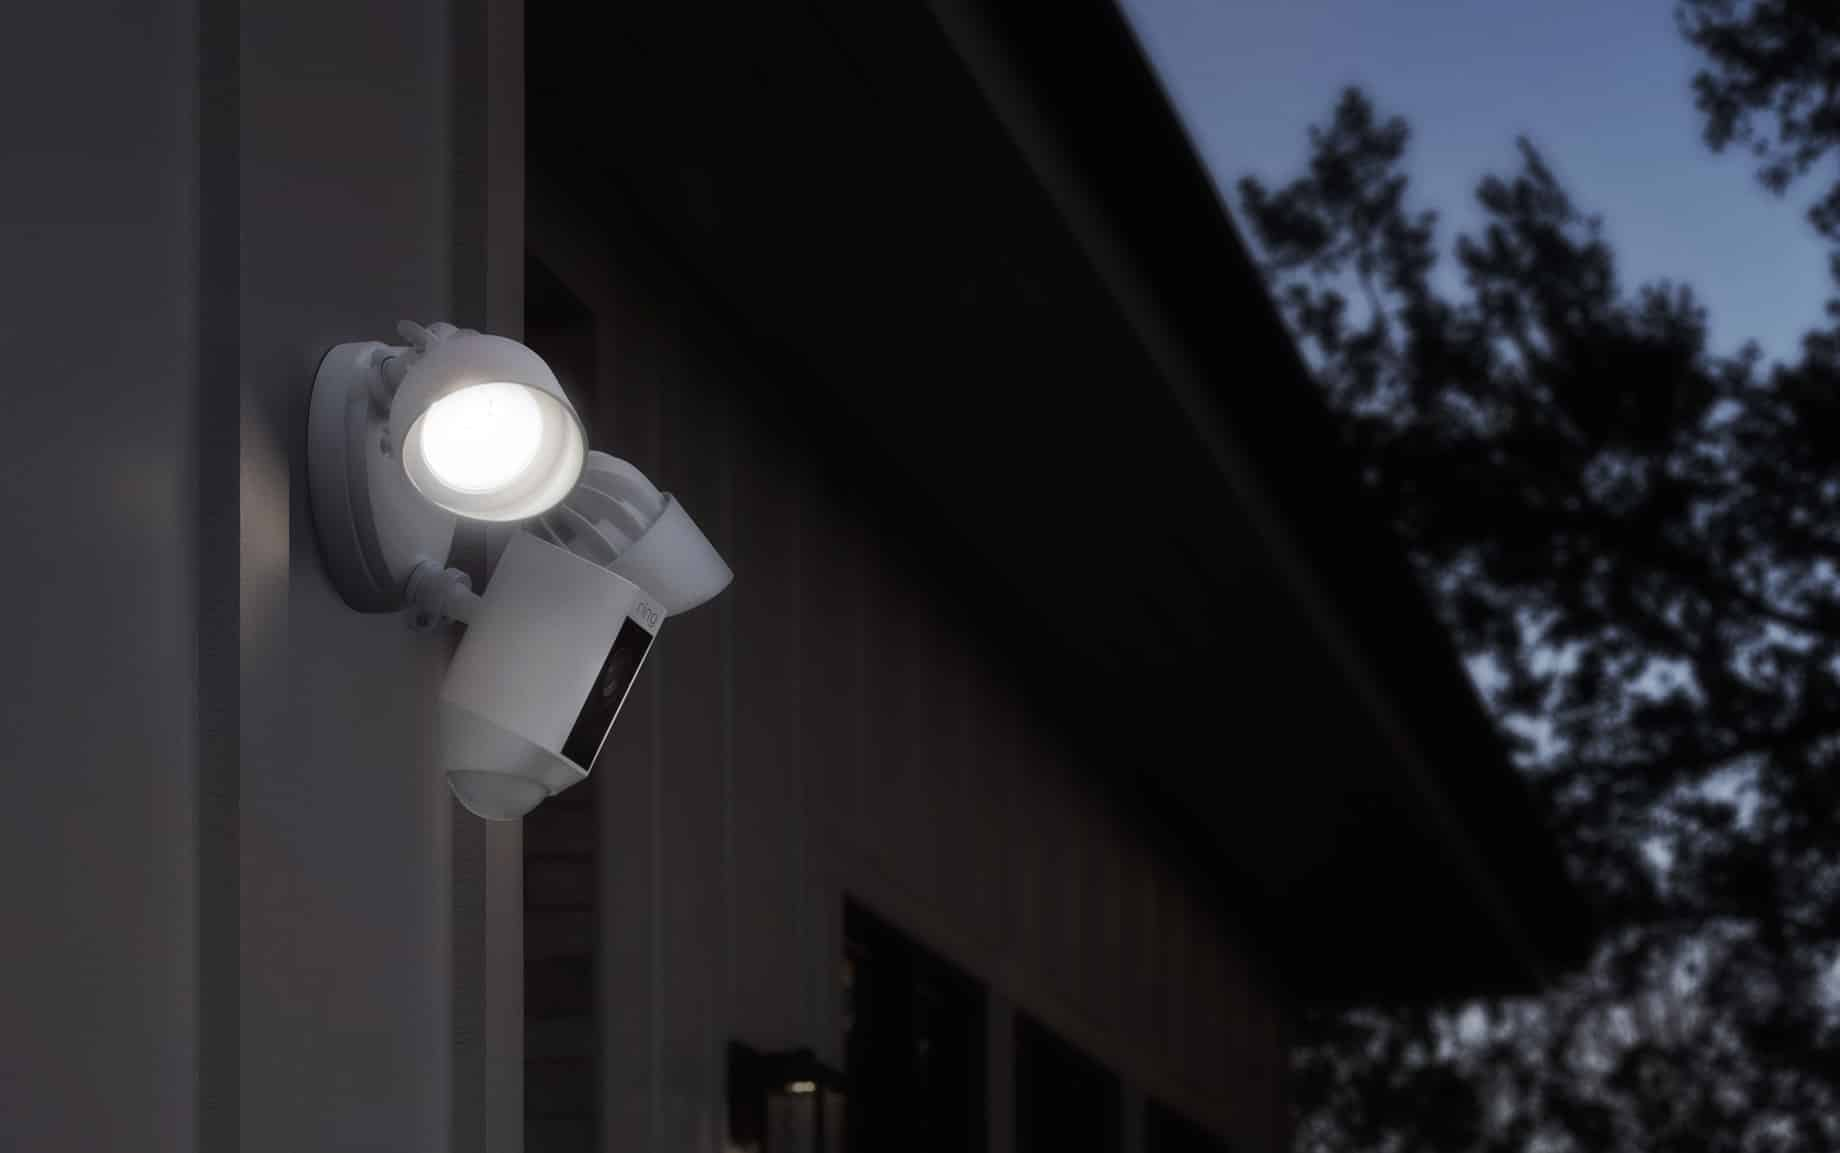 Ring Floodlight Camera Deals Coupons Amp Reviews